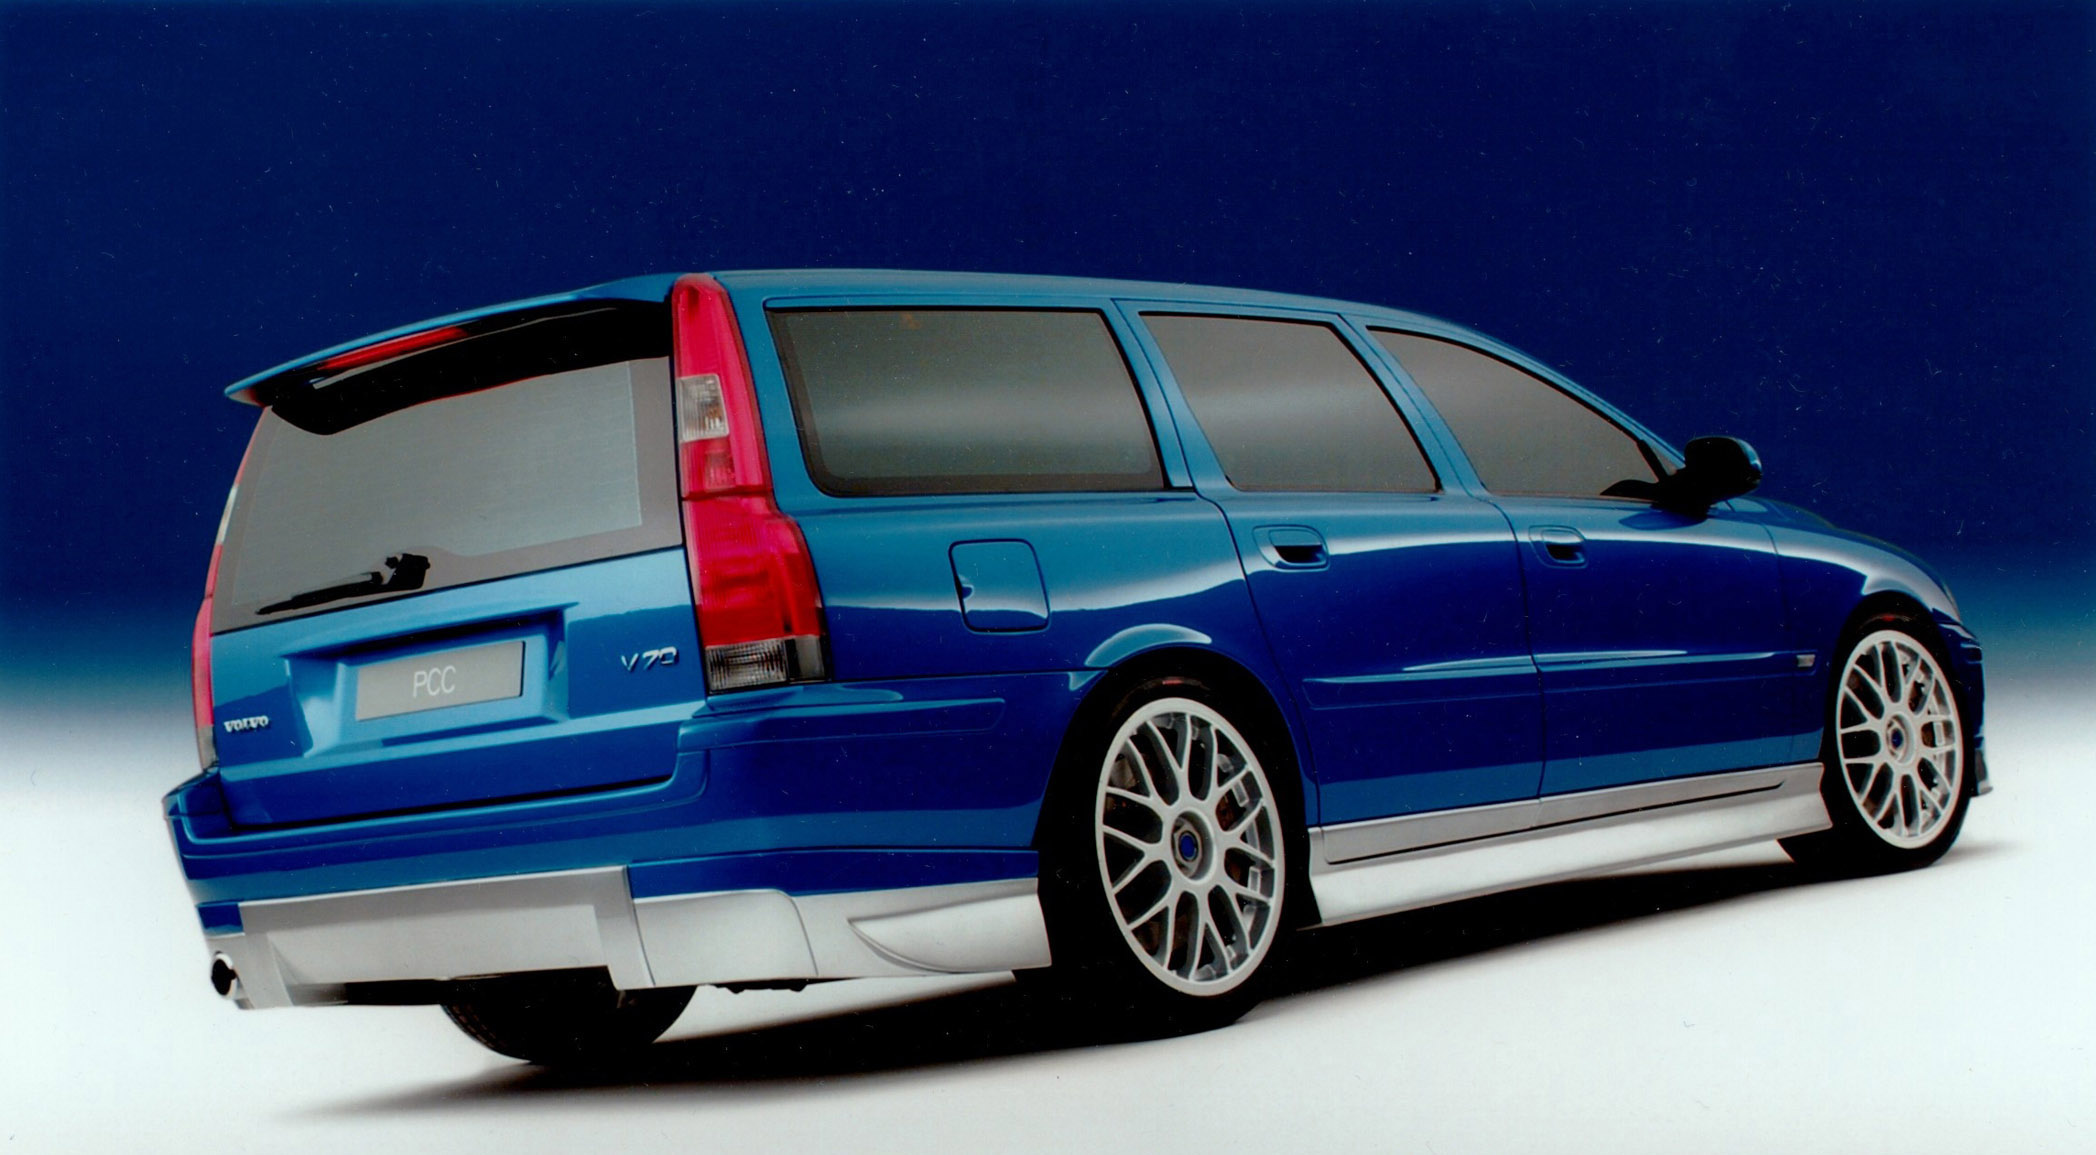 Volvo V70 Concept Car 2001 - Picture 35809